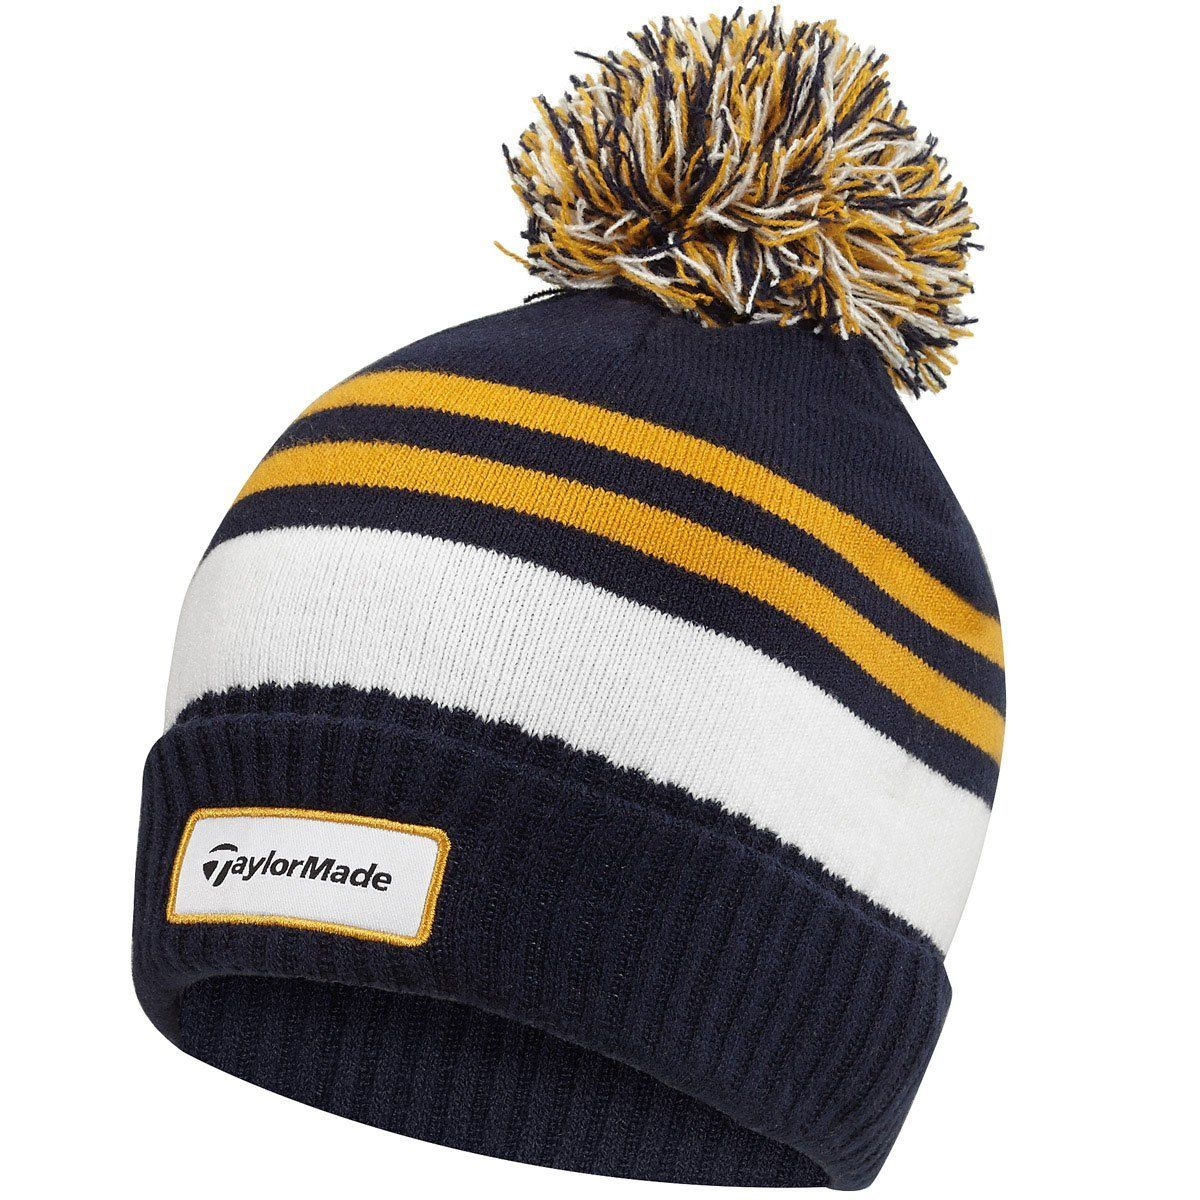 9591a96551e ... protection this mens double knit thermal striped golf beanie bobble hat  by Taylormade will keep you warm and comfortable during the cold winter  months!